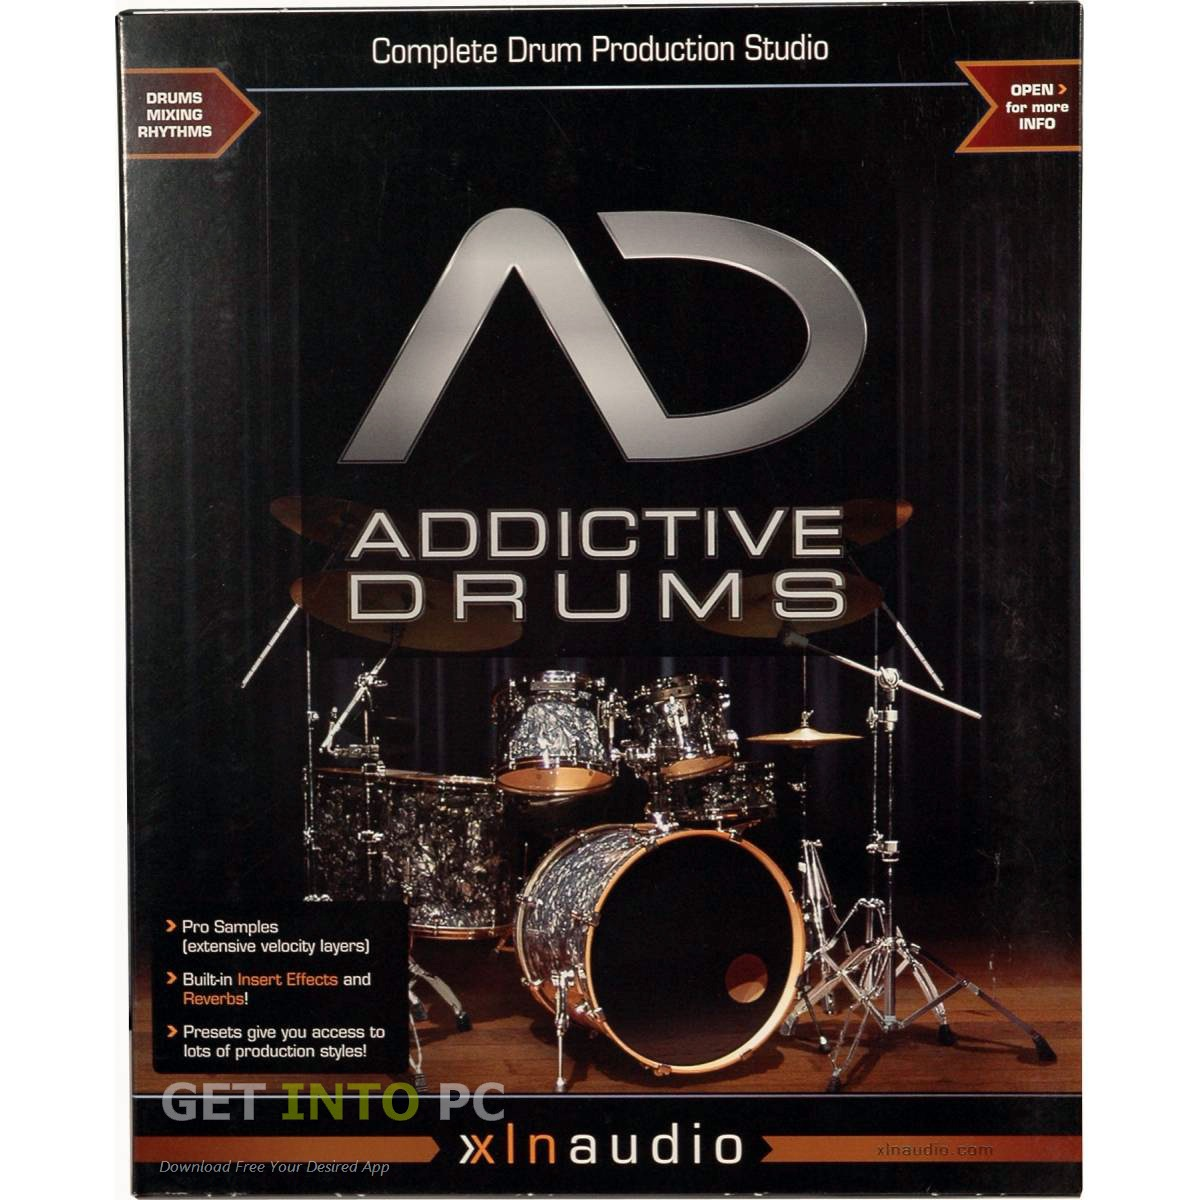 cubase 9 addictive drums 2 pc inmediato en mercado libre. Black Bedroom Furniture Sets. Home Design Ideas